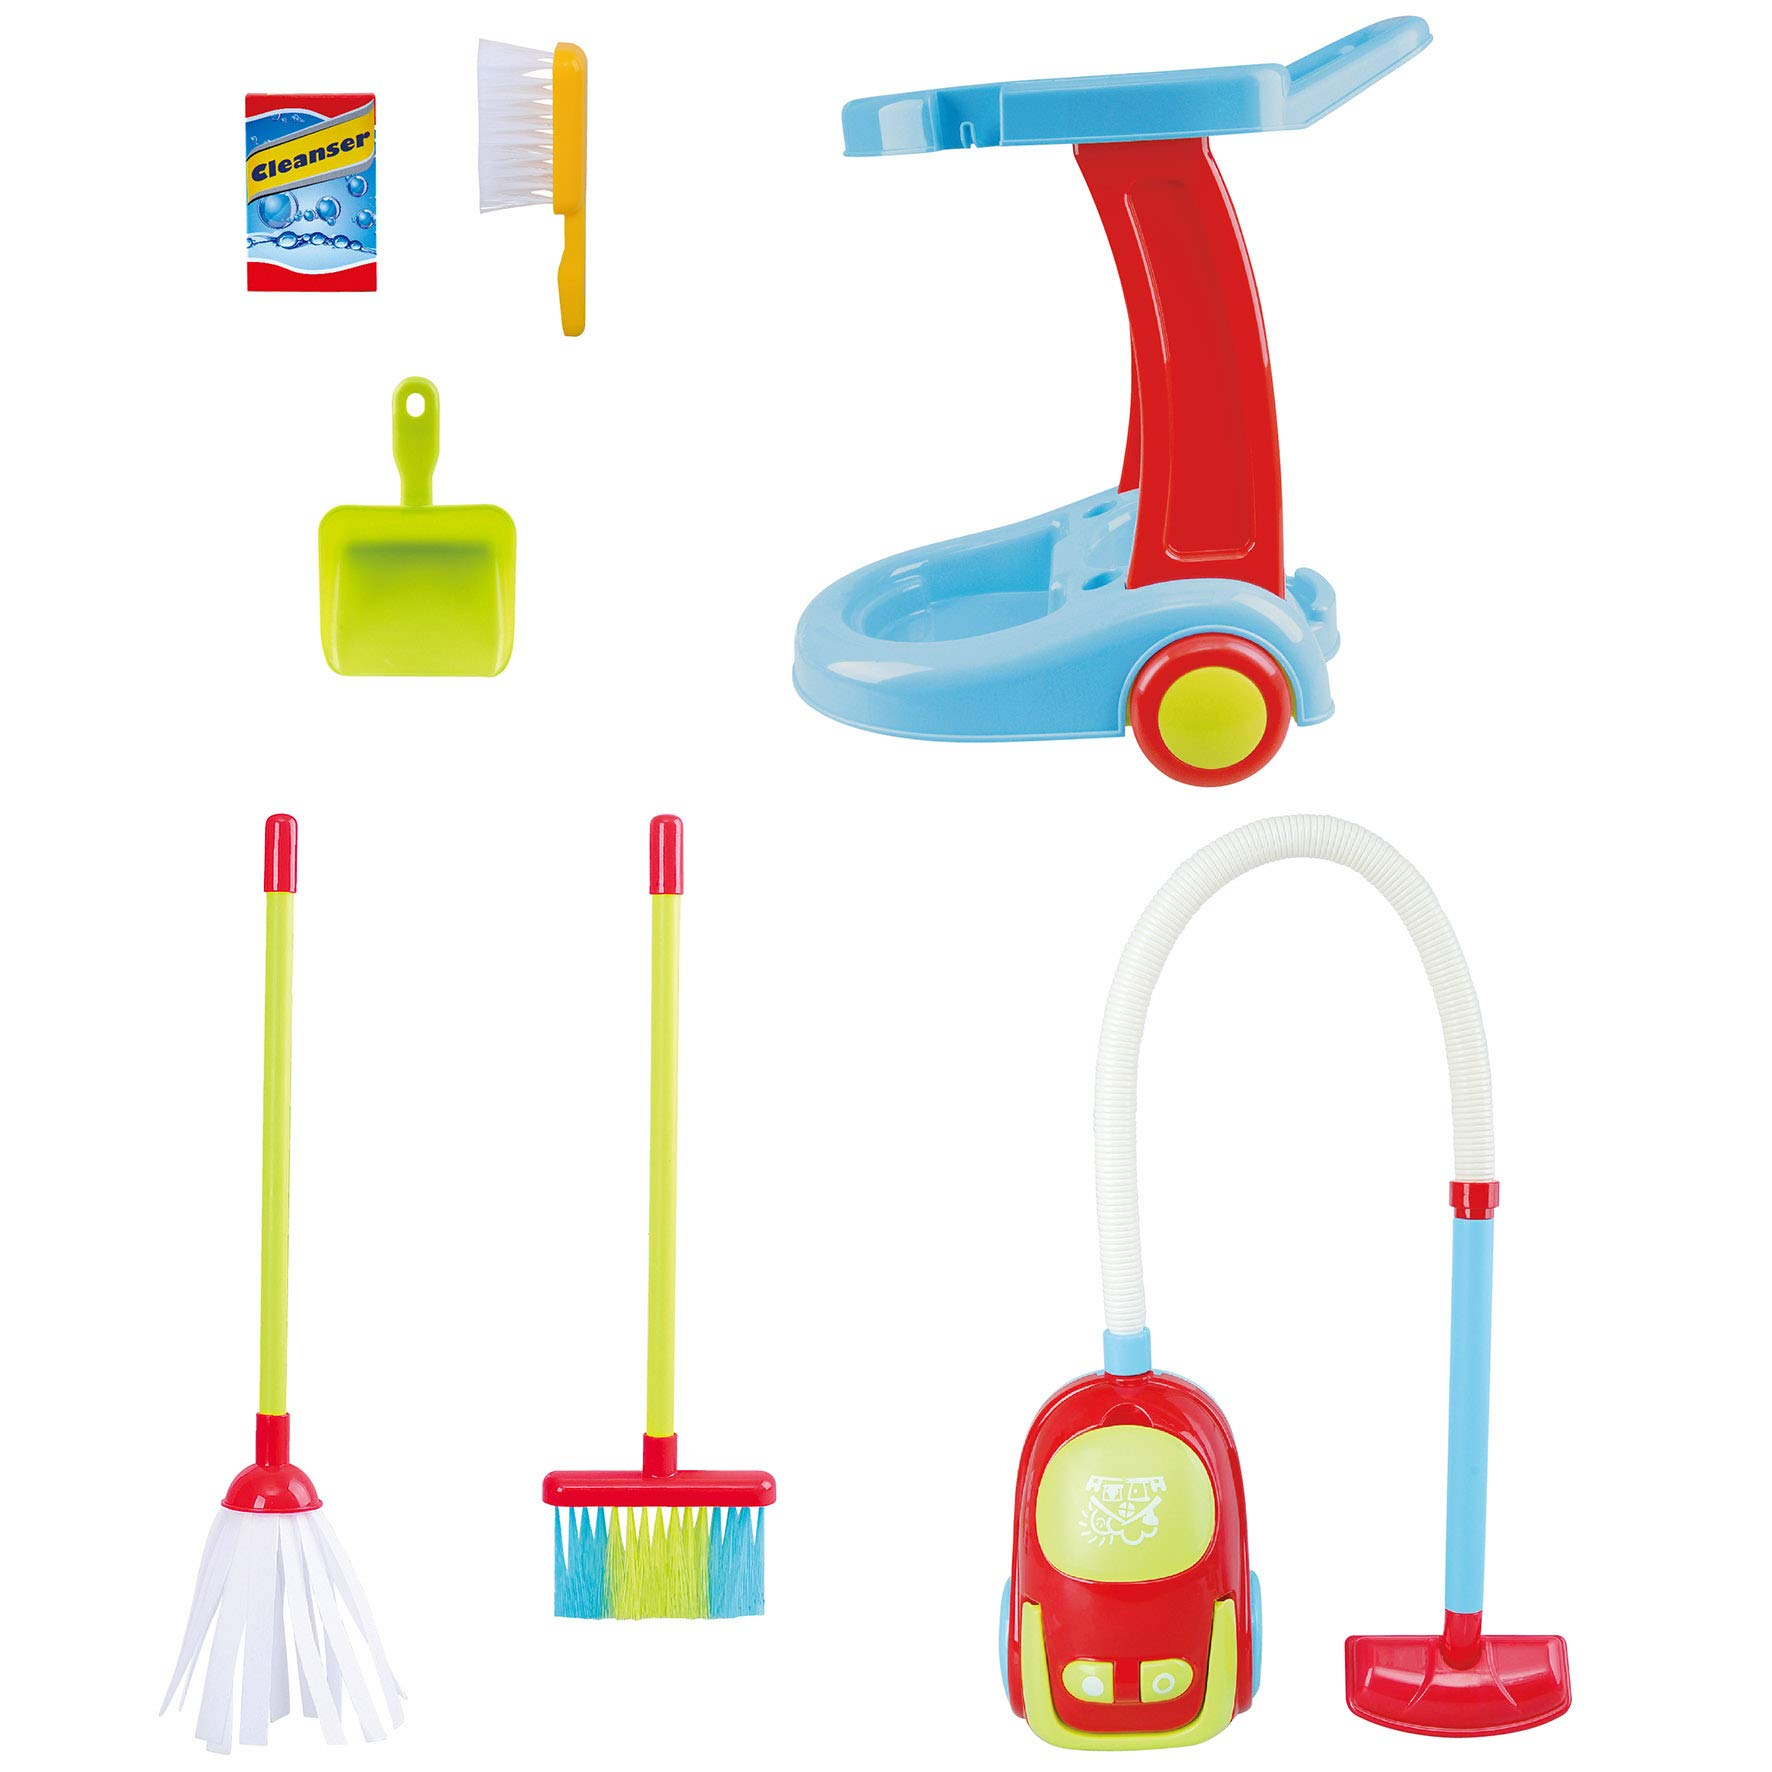 PlayGo My Cleaning Trolley with Vacuum Cleaner Toy 7 Pc Home Products for Kids Pretend Play Set for Kids Age 3 Years & Up by PlayGo (Image #3)